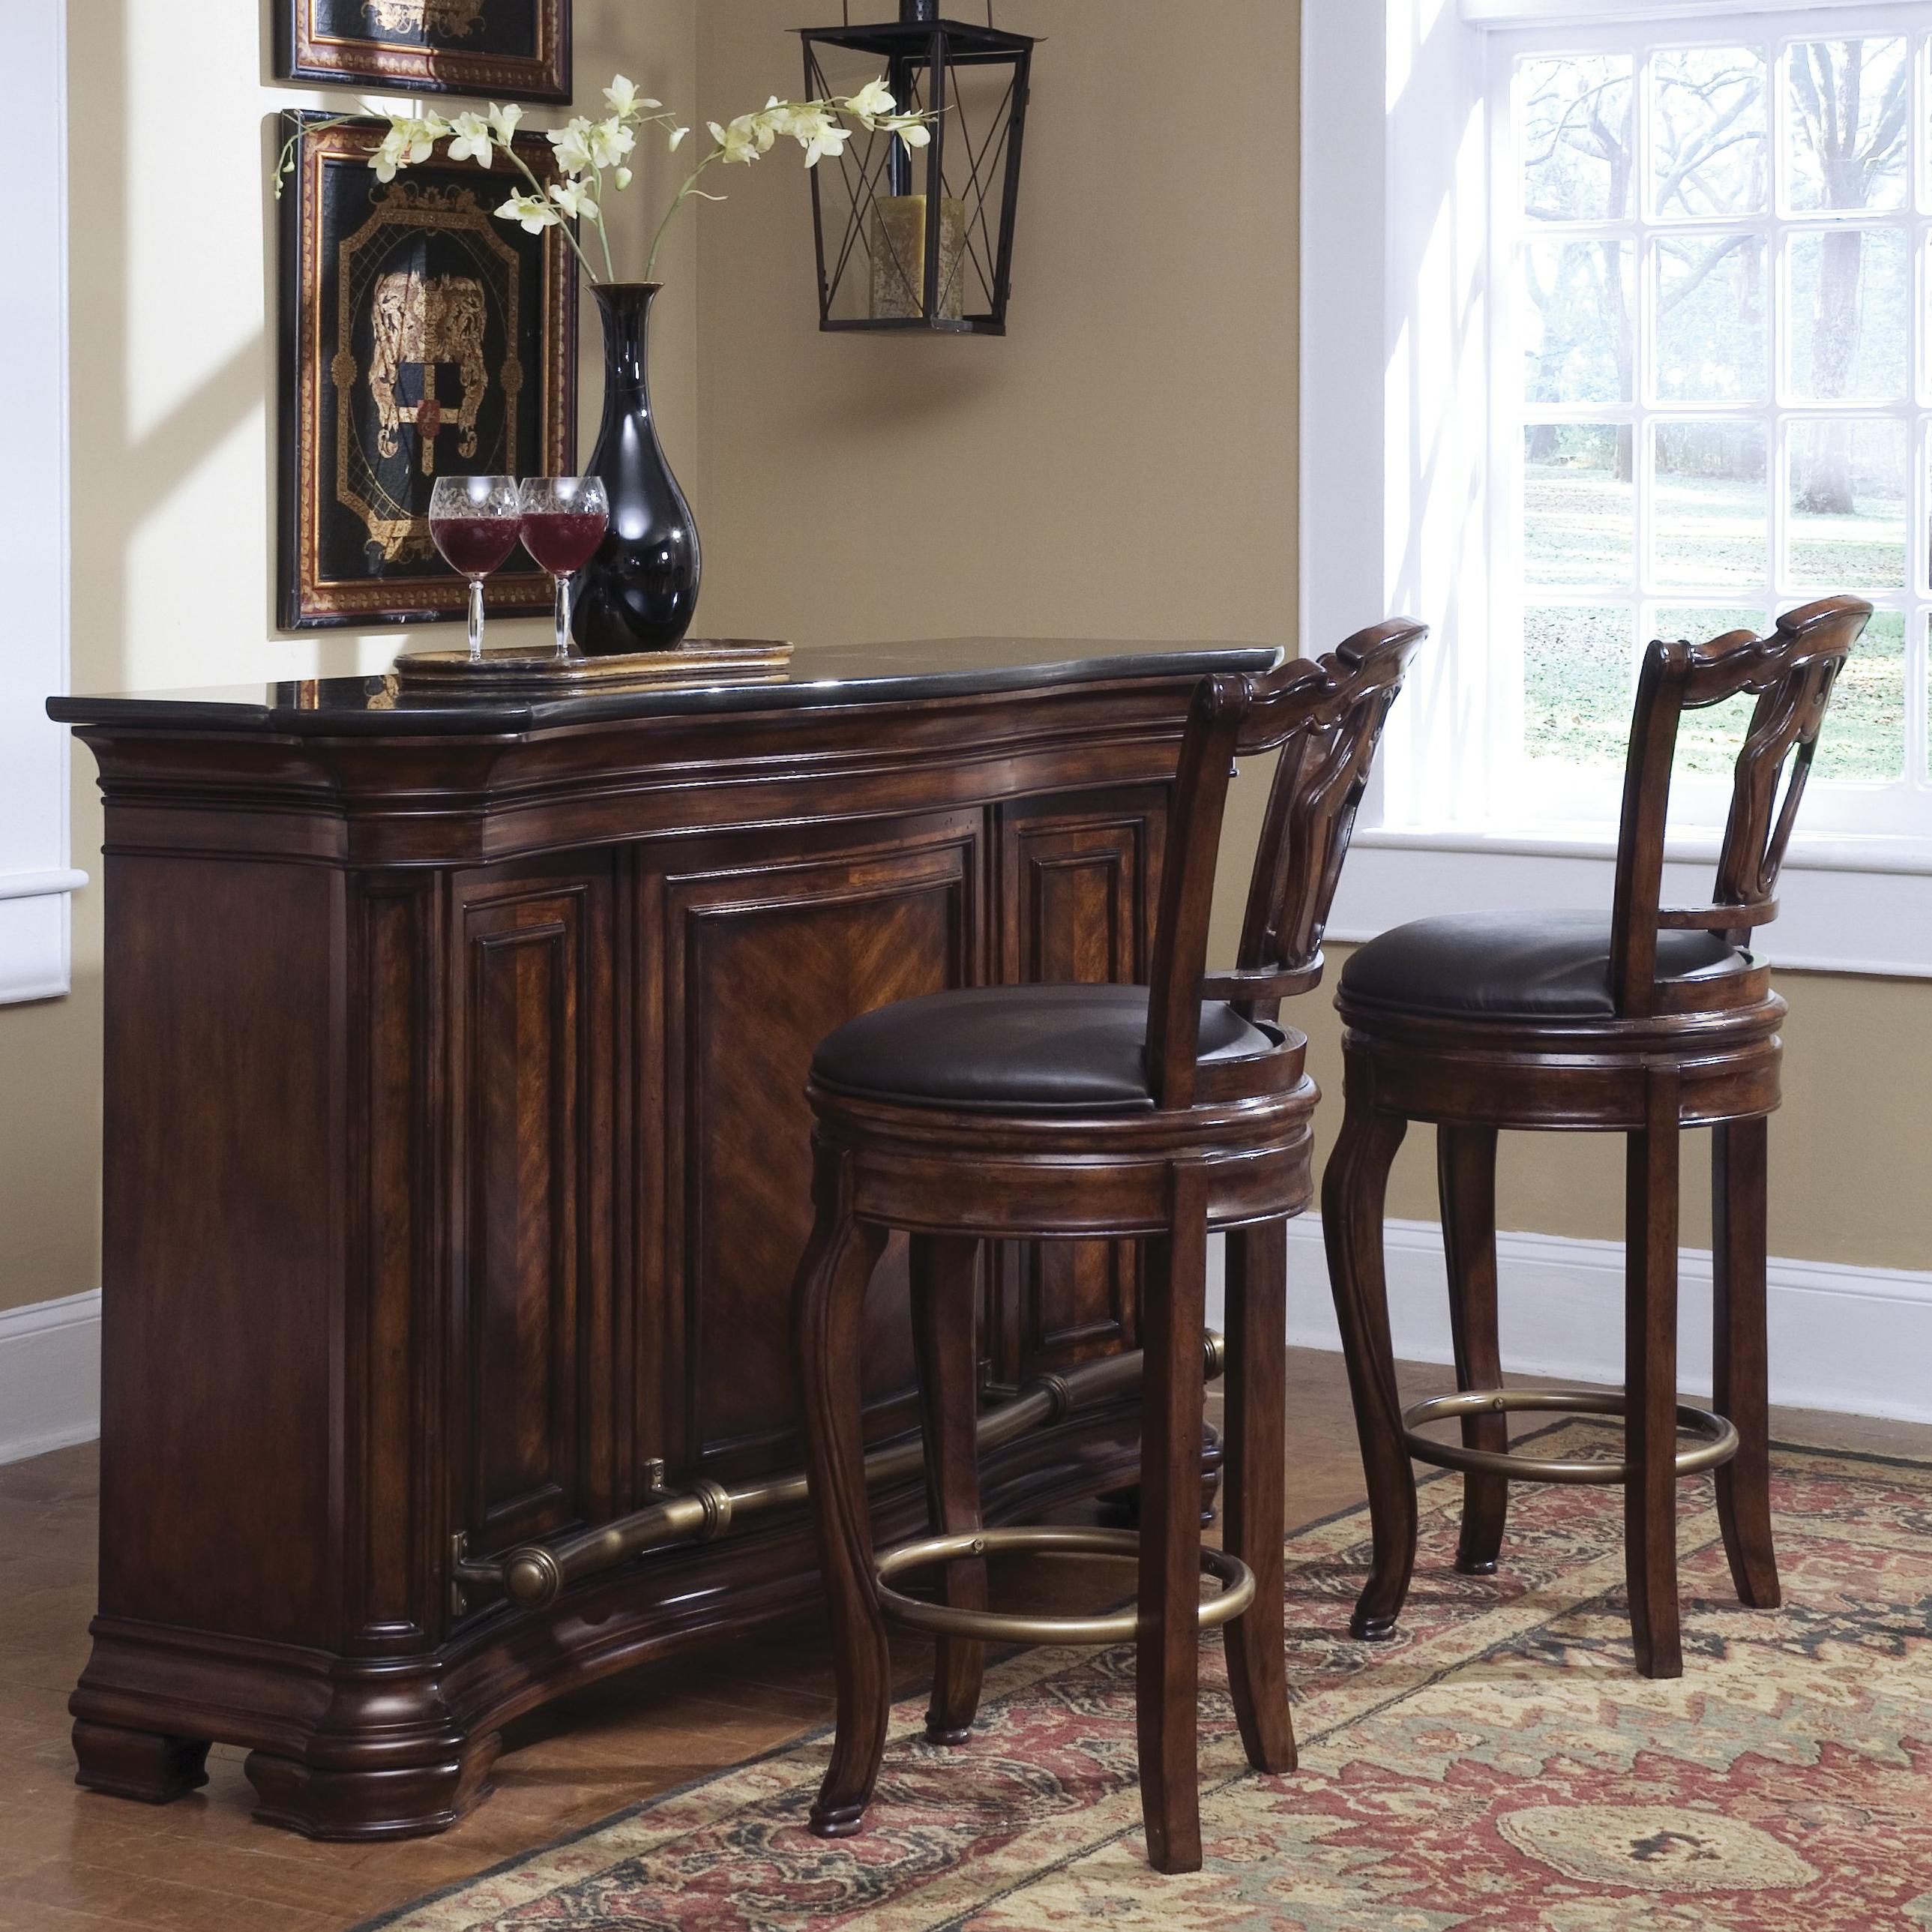 Pulaski Furniture Accents Toscano Vialetto Bar Jacksonville Furniture Mart Bars